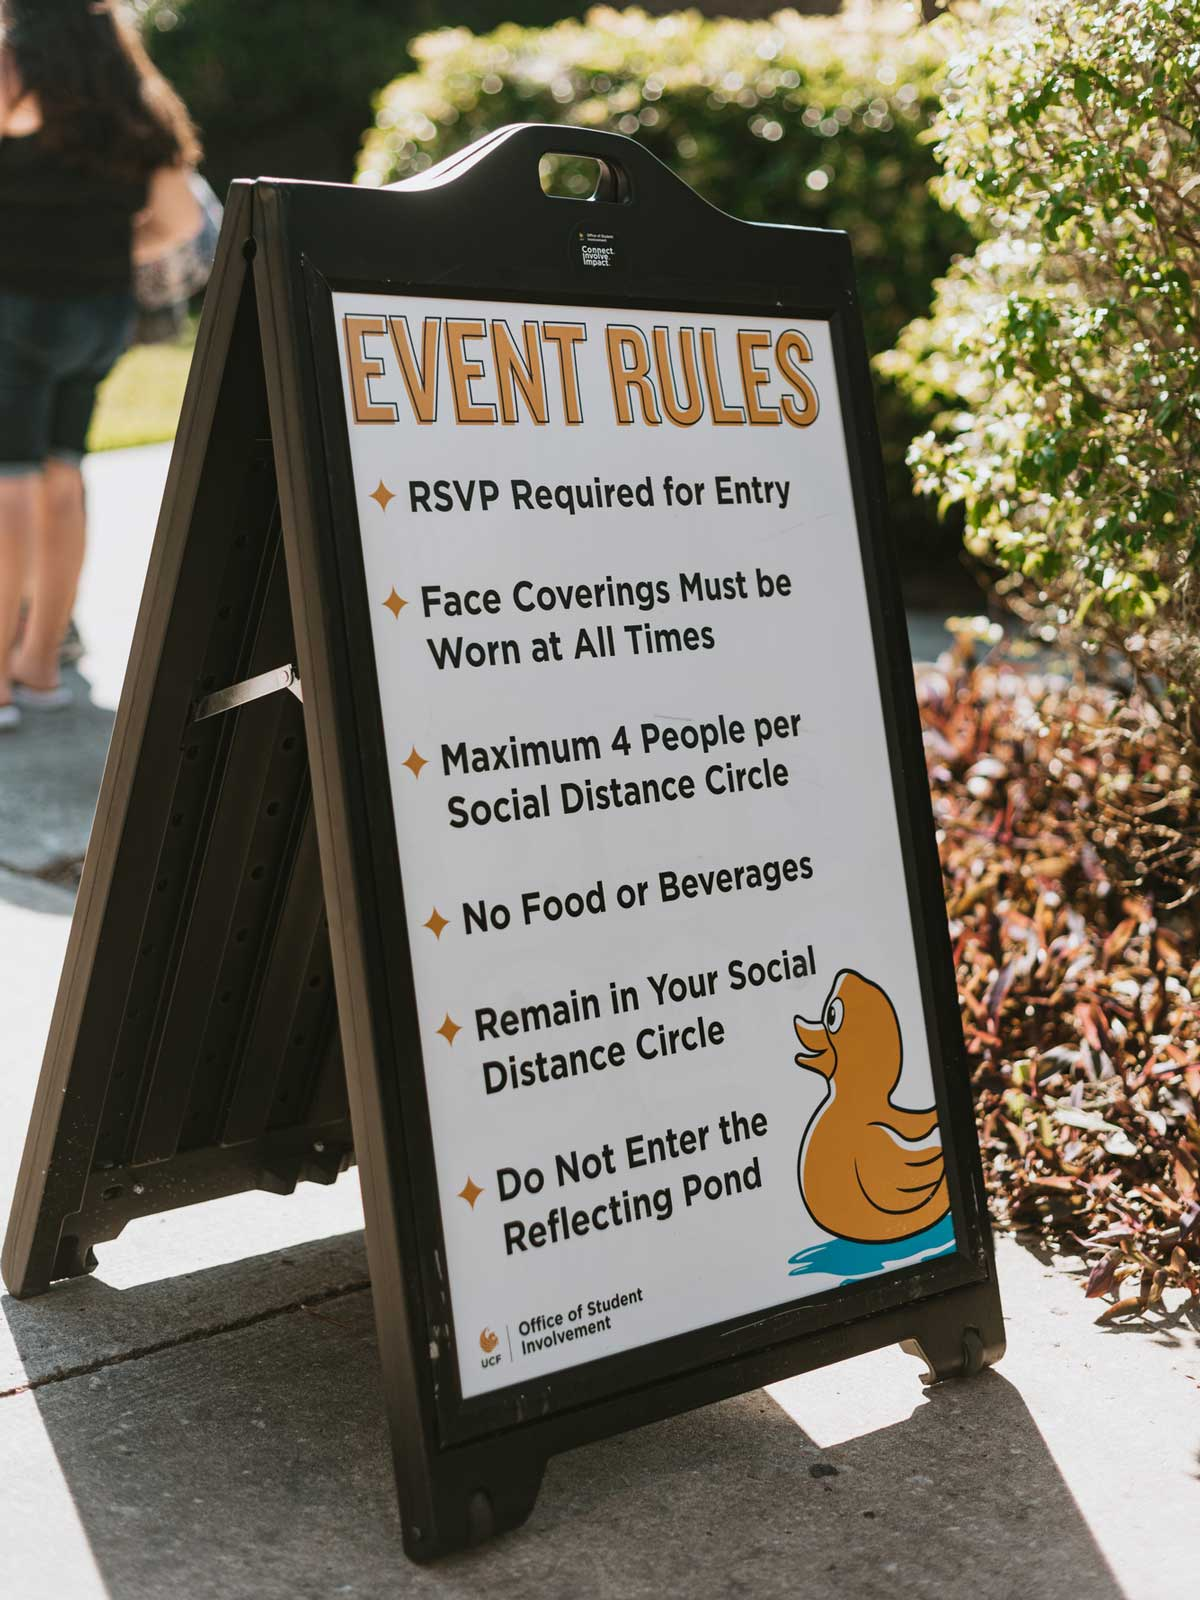 Event rules sign